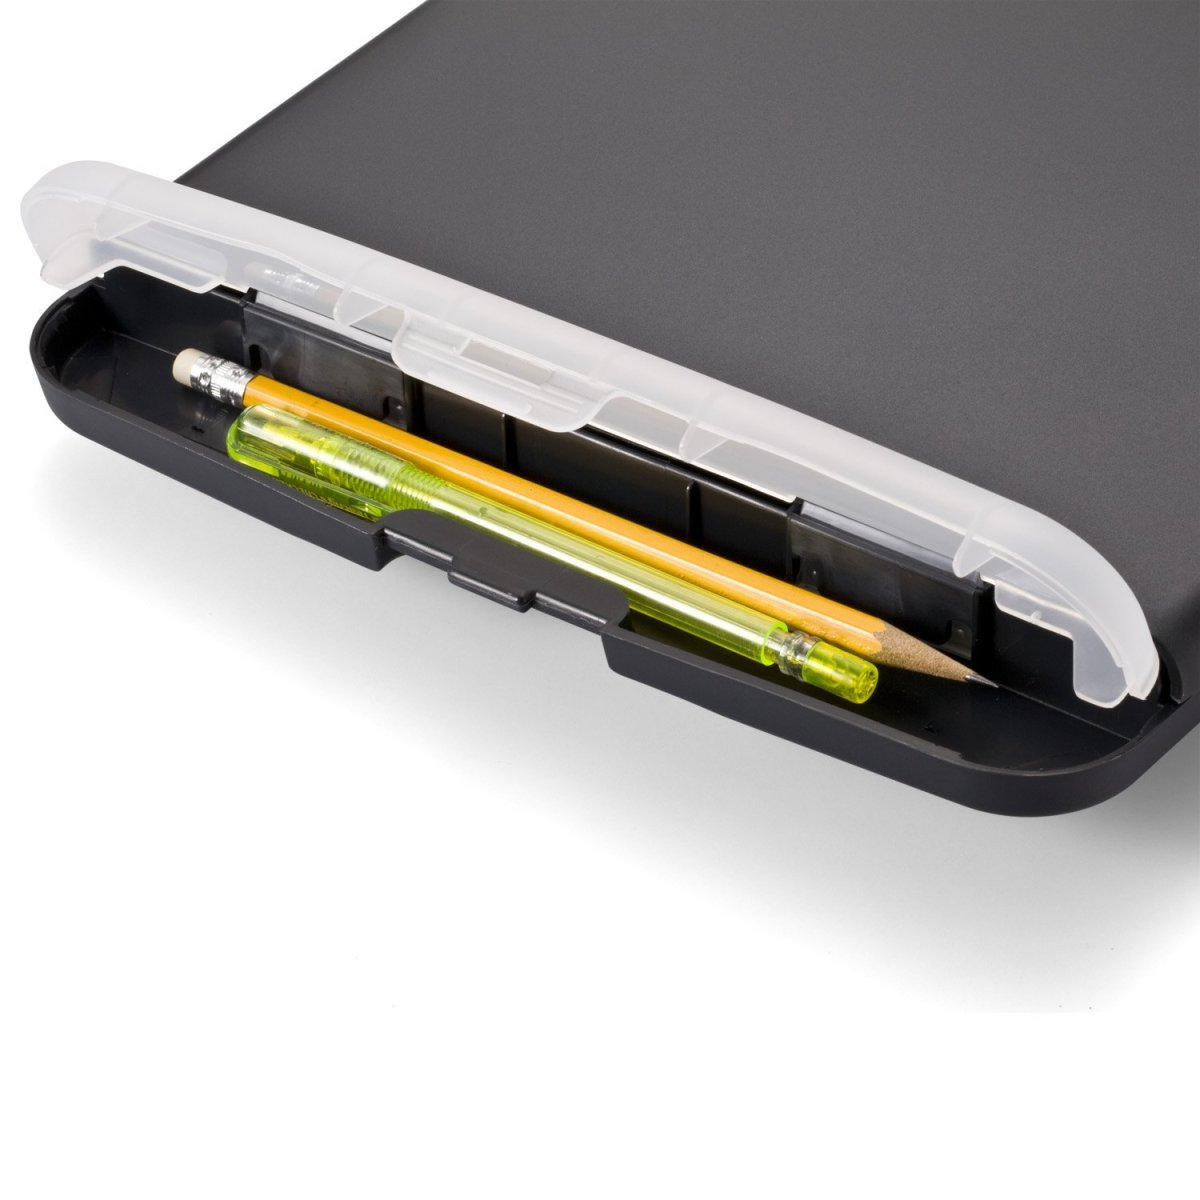 A special slot holds pens or pencils.